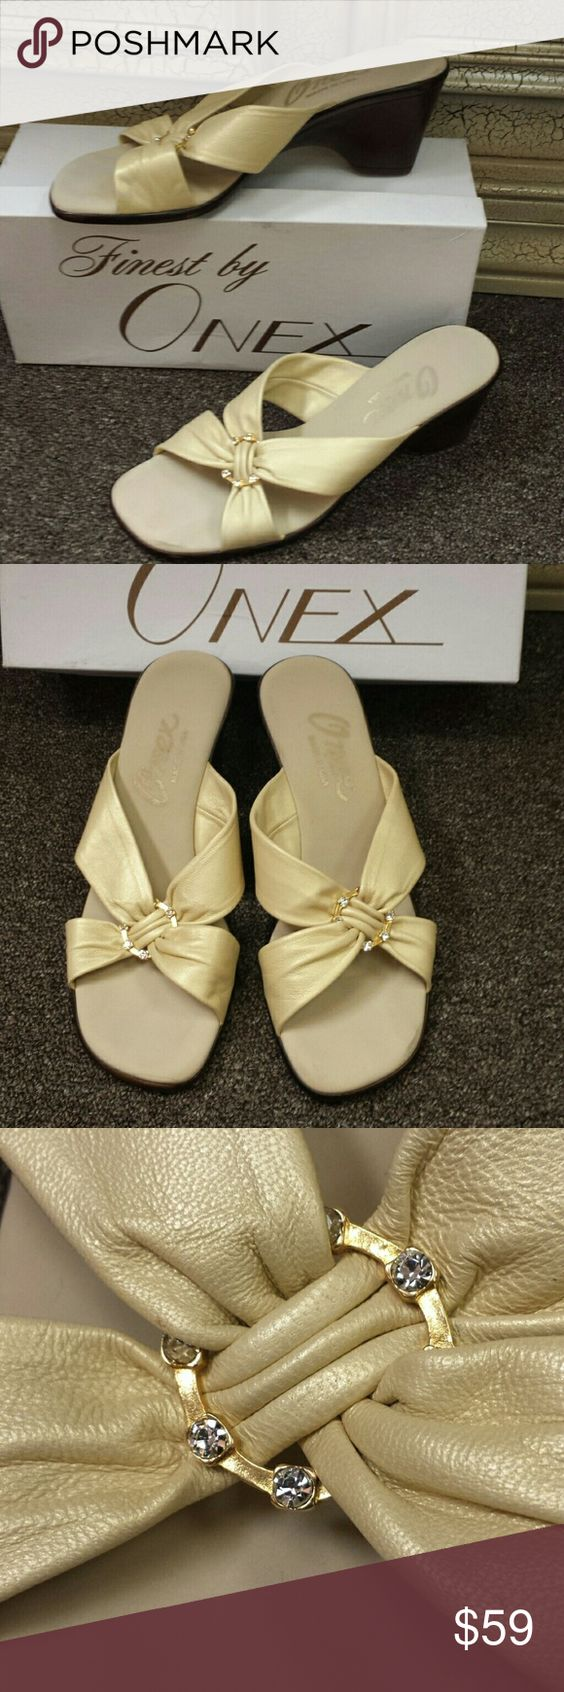 Onex gold leather sandals Onex gold leather sandals with gold and rhinestone embellishments never worn .  Stylish and comfortable onex Shoes Sandals